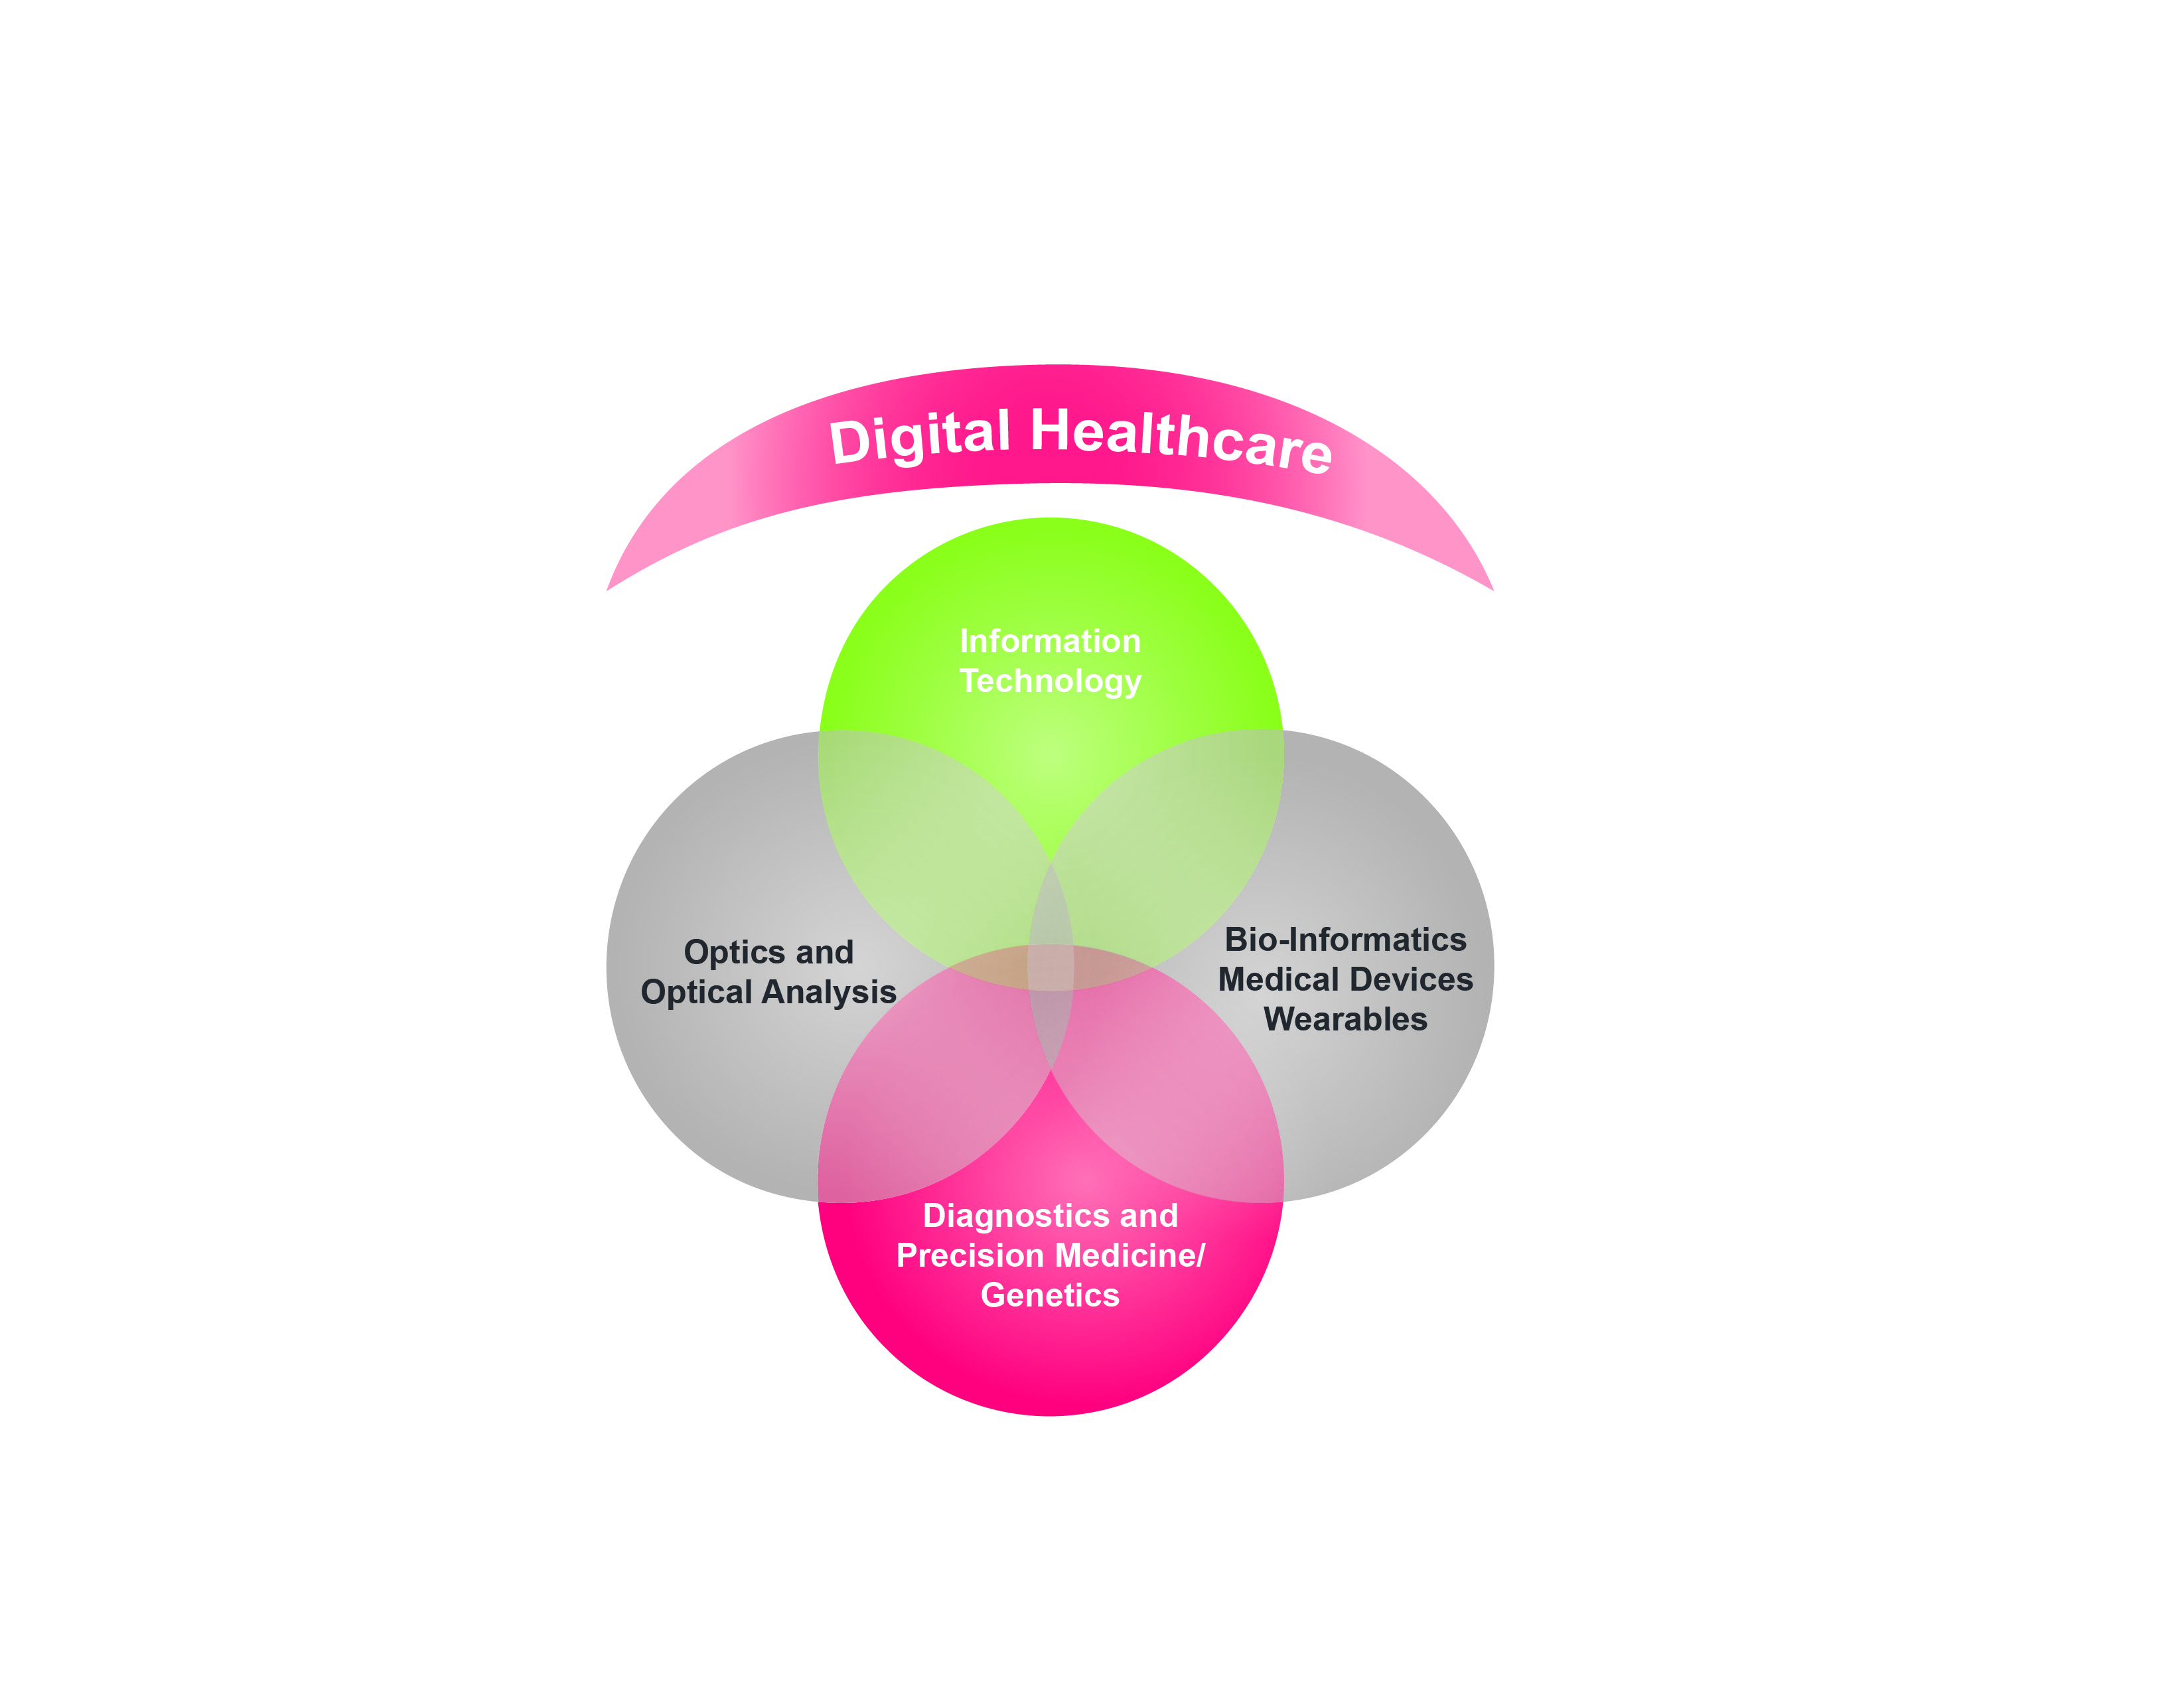 Digital Healthcare includes Information Technology, Optics, Bio-Informatics, and Personalized Medicine